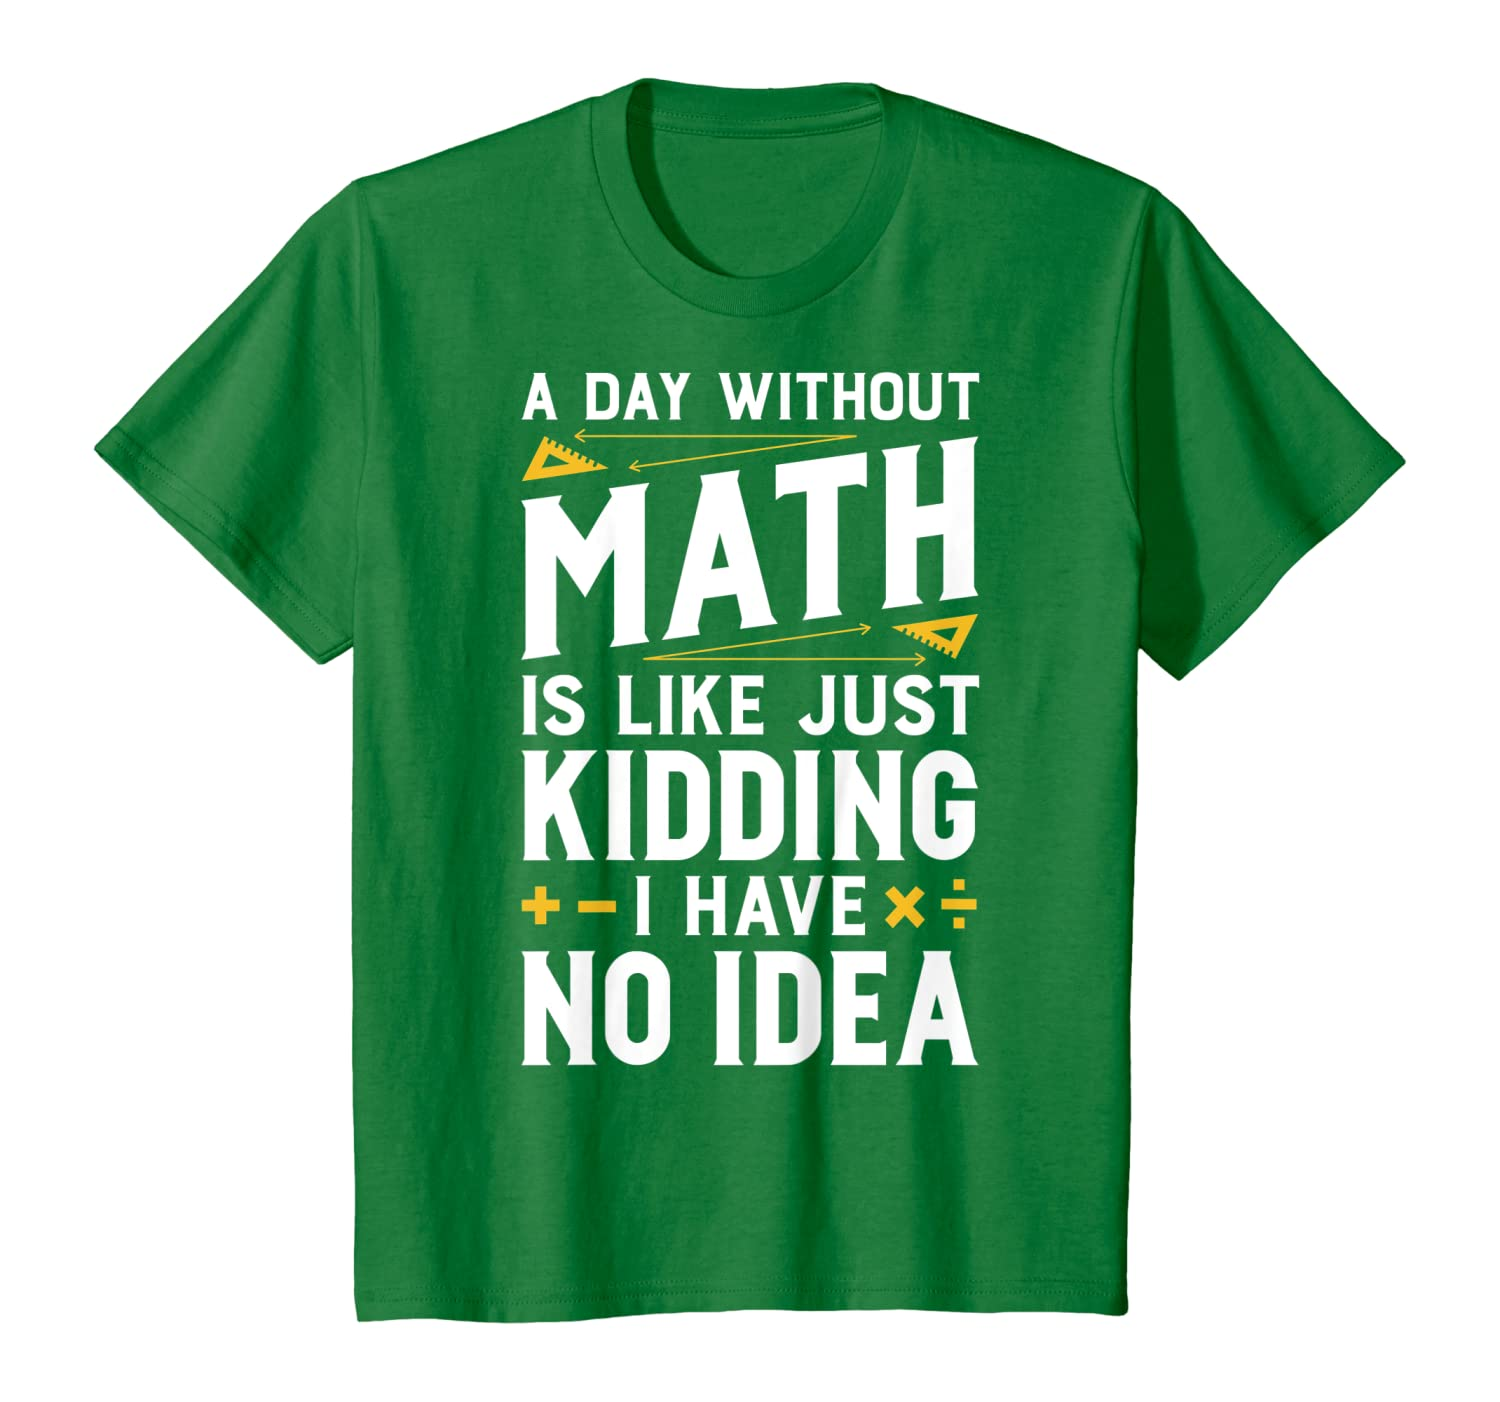 A Day Without Math is Like Just Kidding T shirt Funny Gift-Awarplus